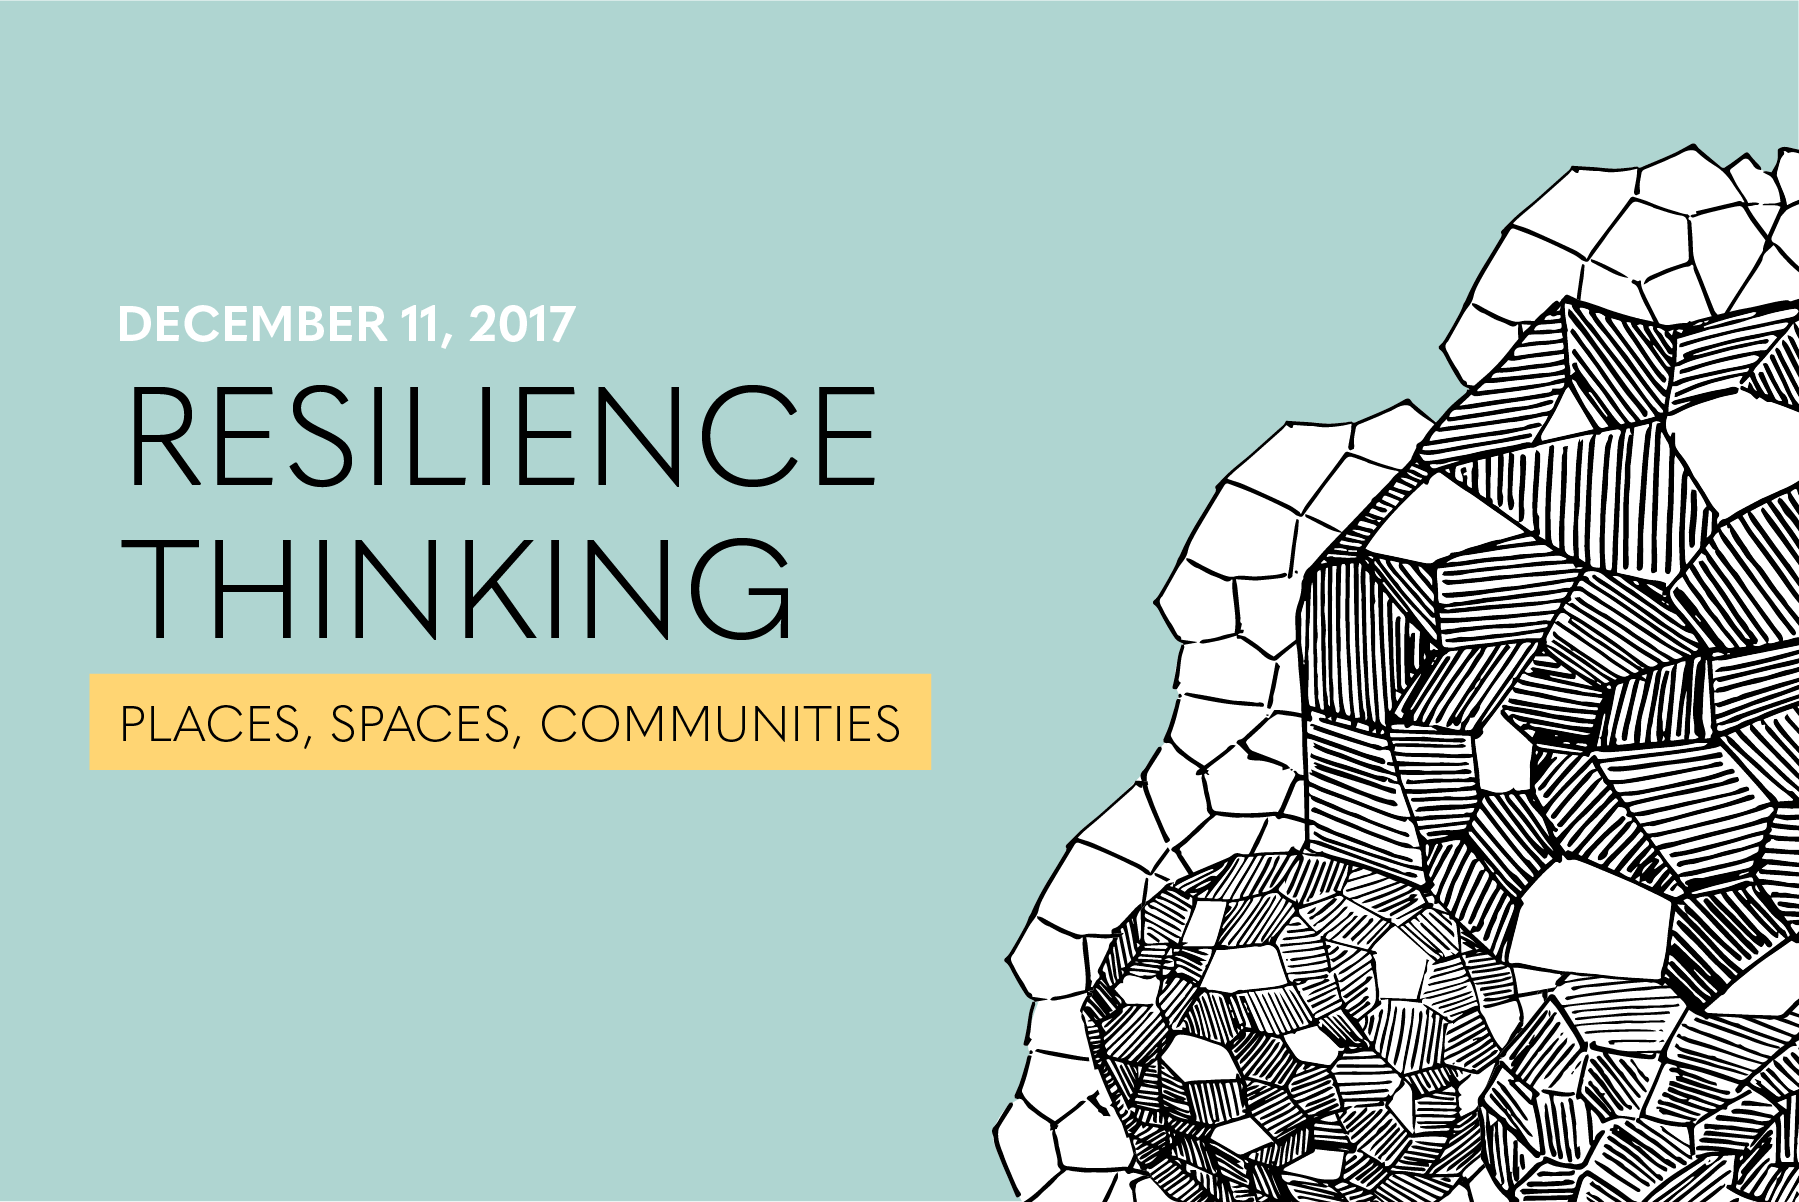 This page is intended only for participants of Resilience Thinking: Places, Spaces, Communities.